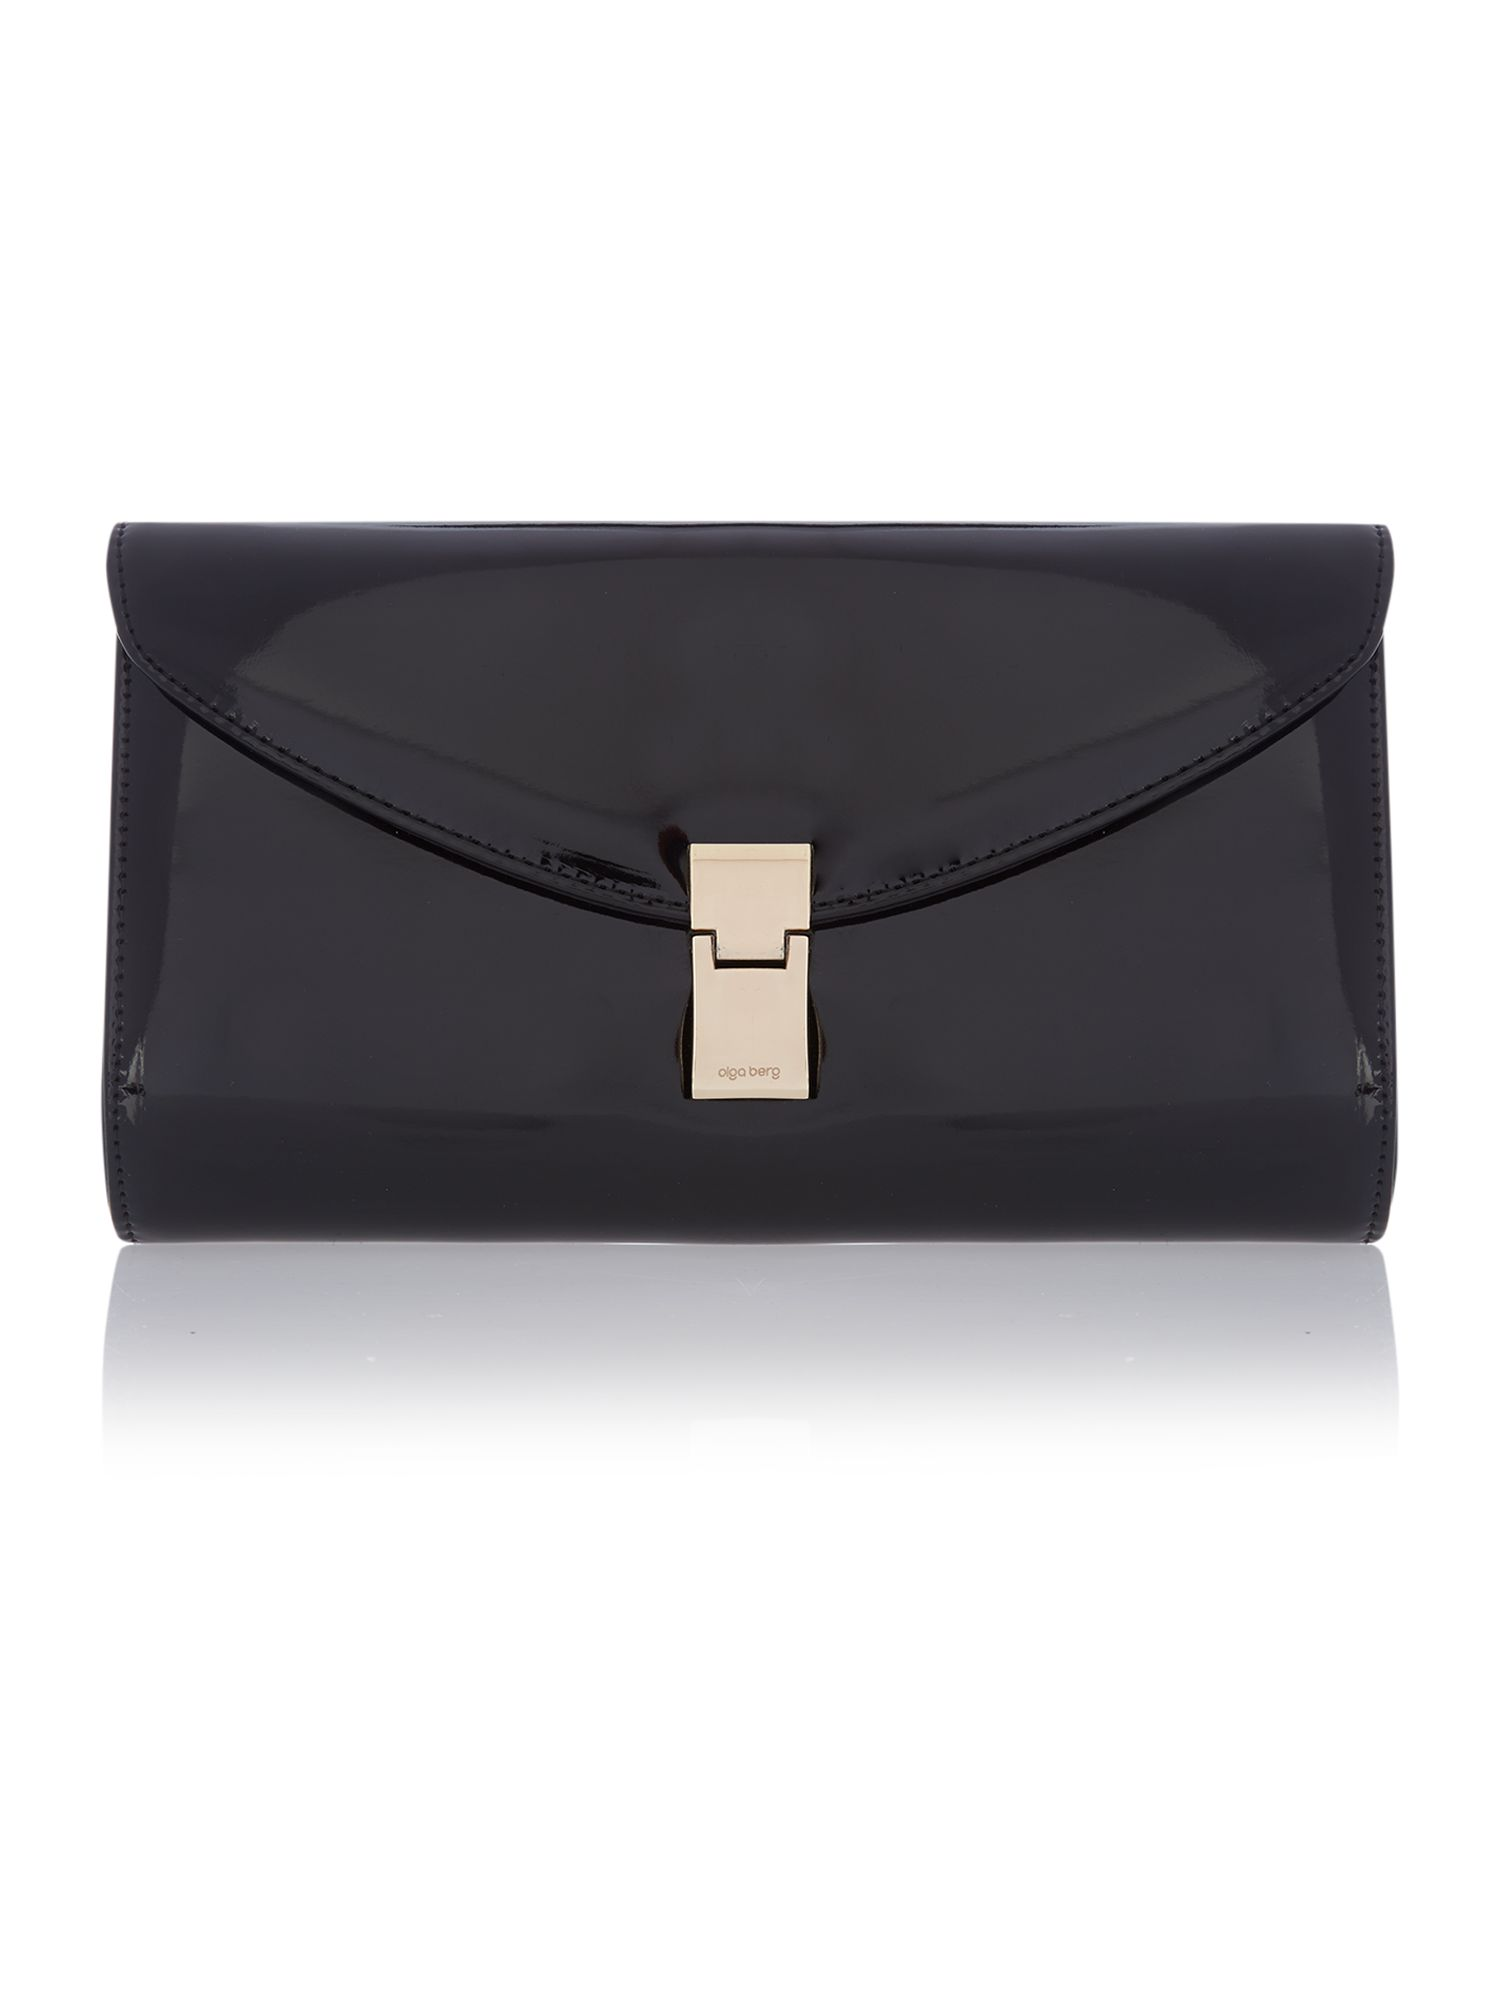 Black patent clutch bag